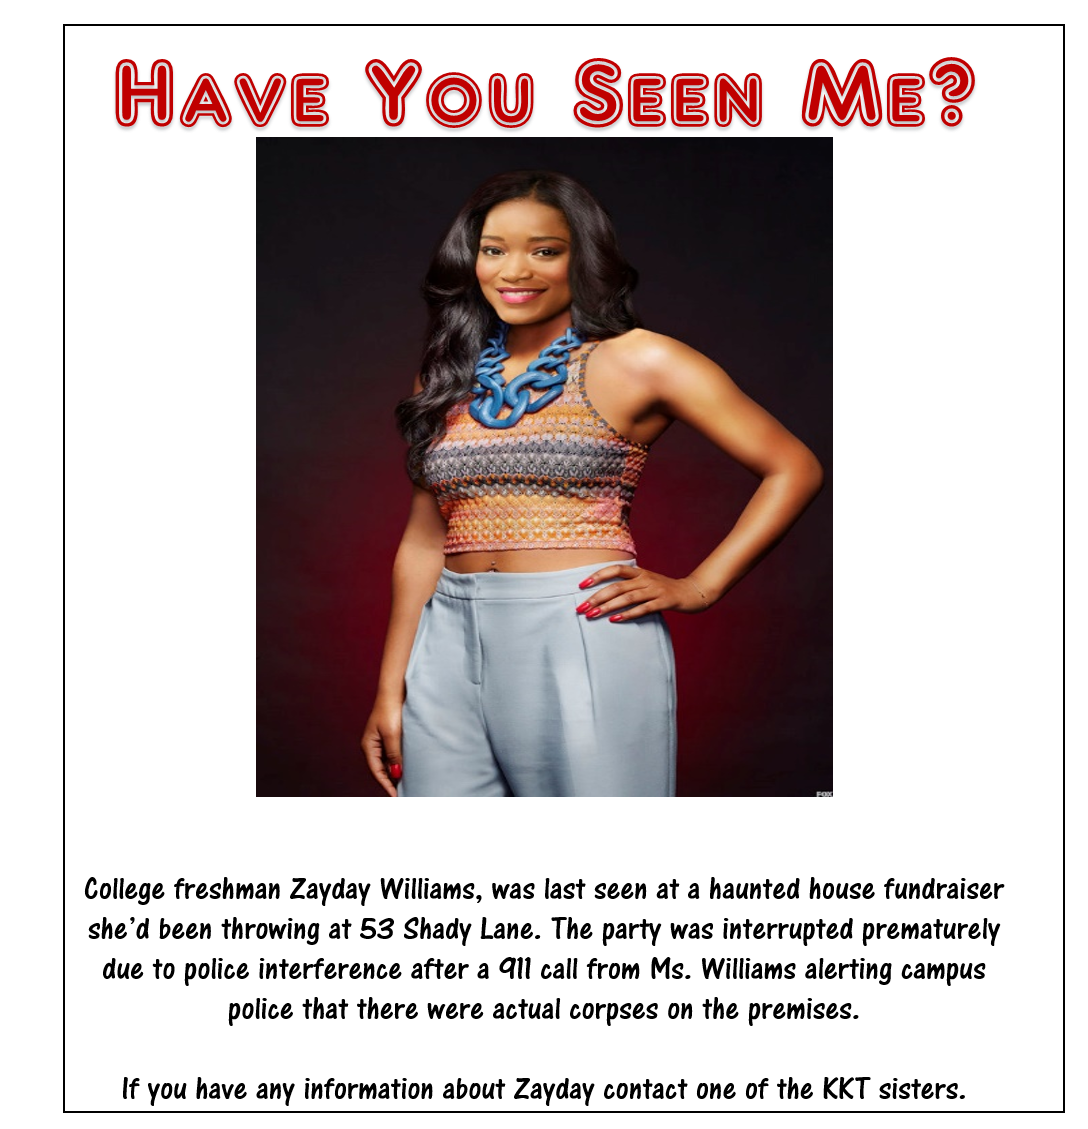 Zayday Missing 2